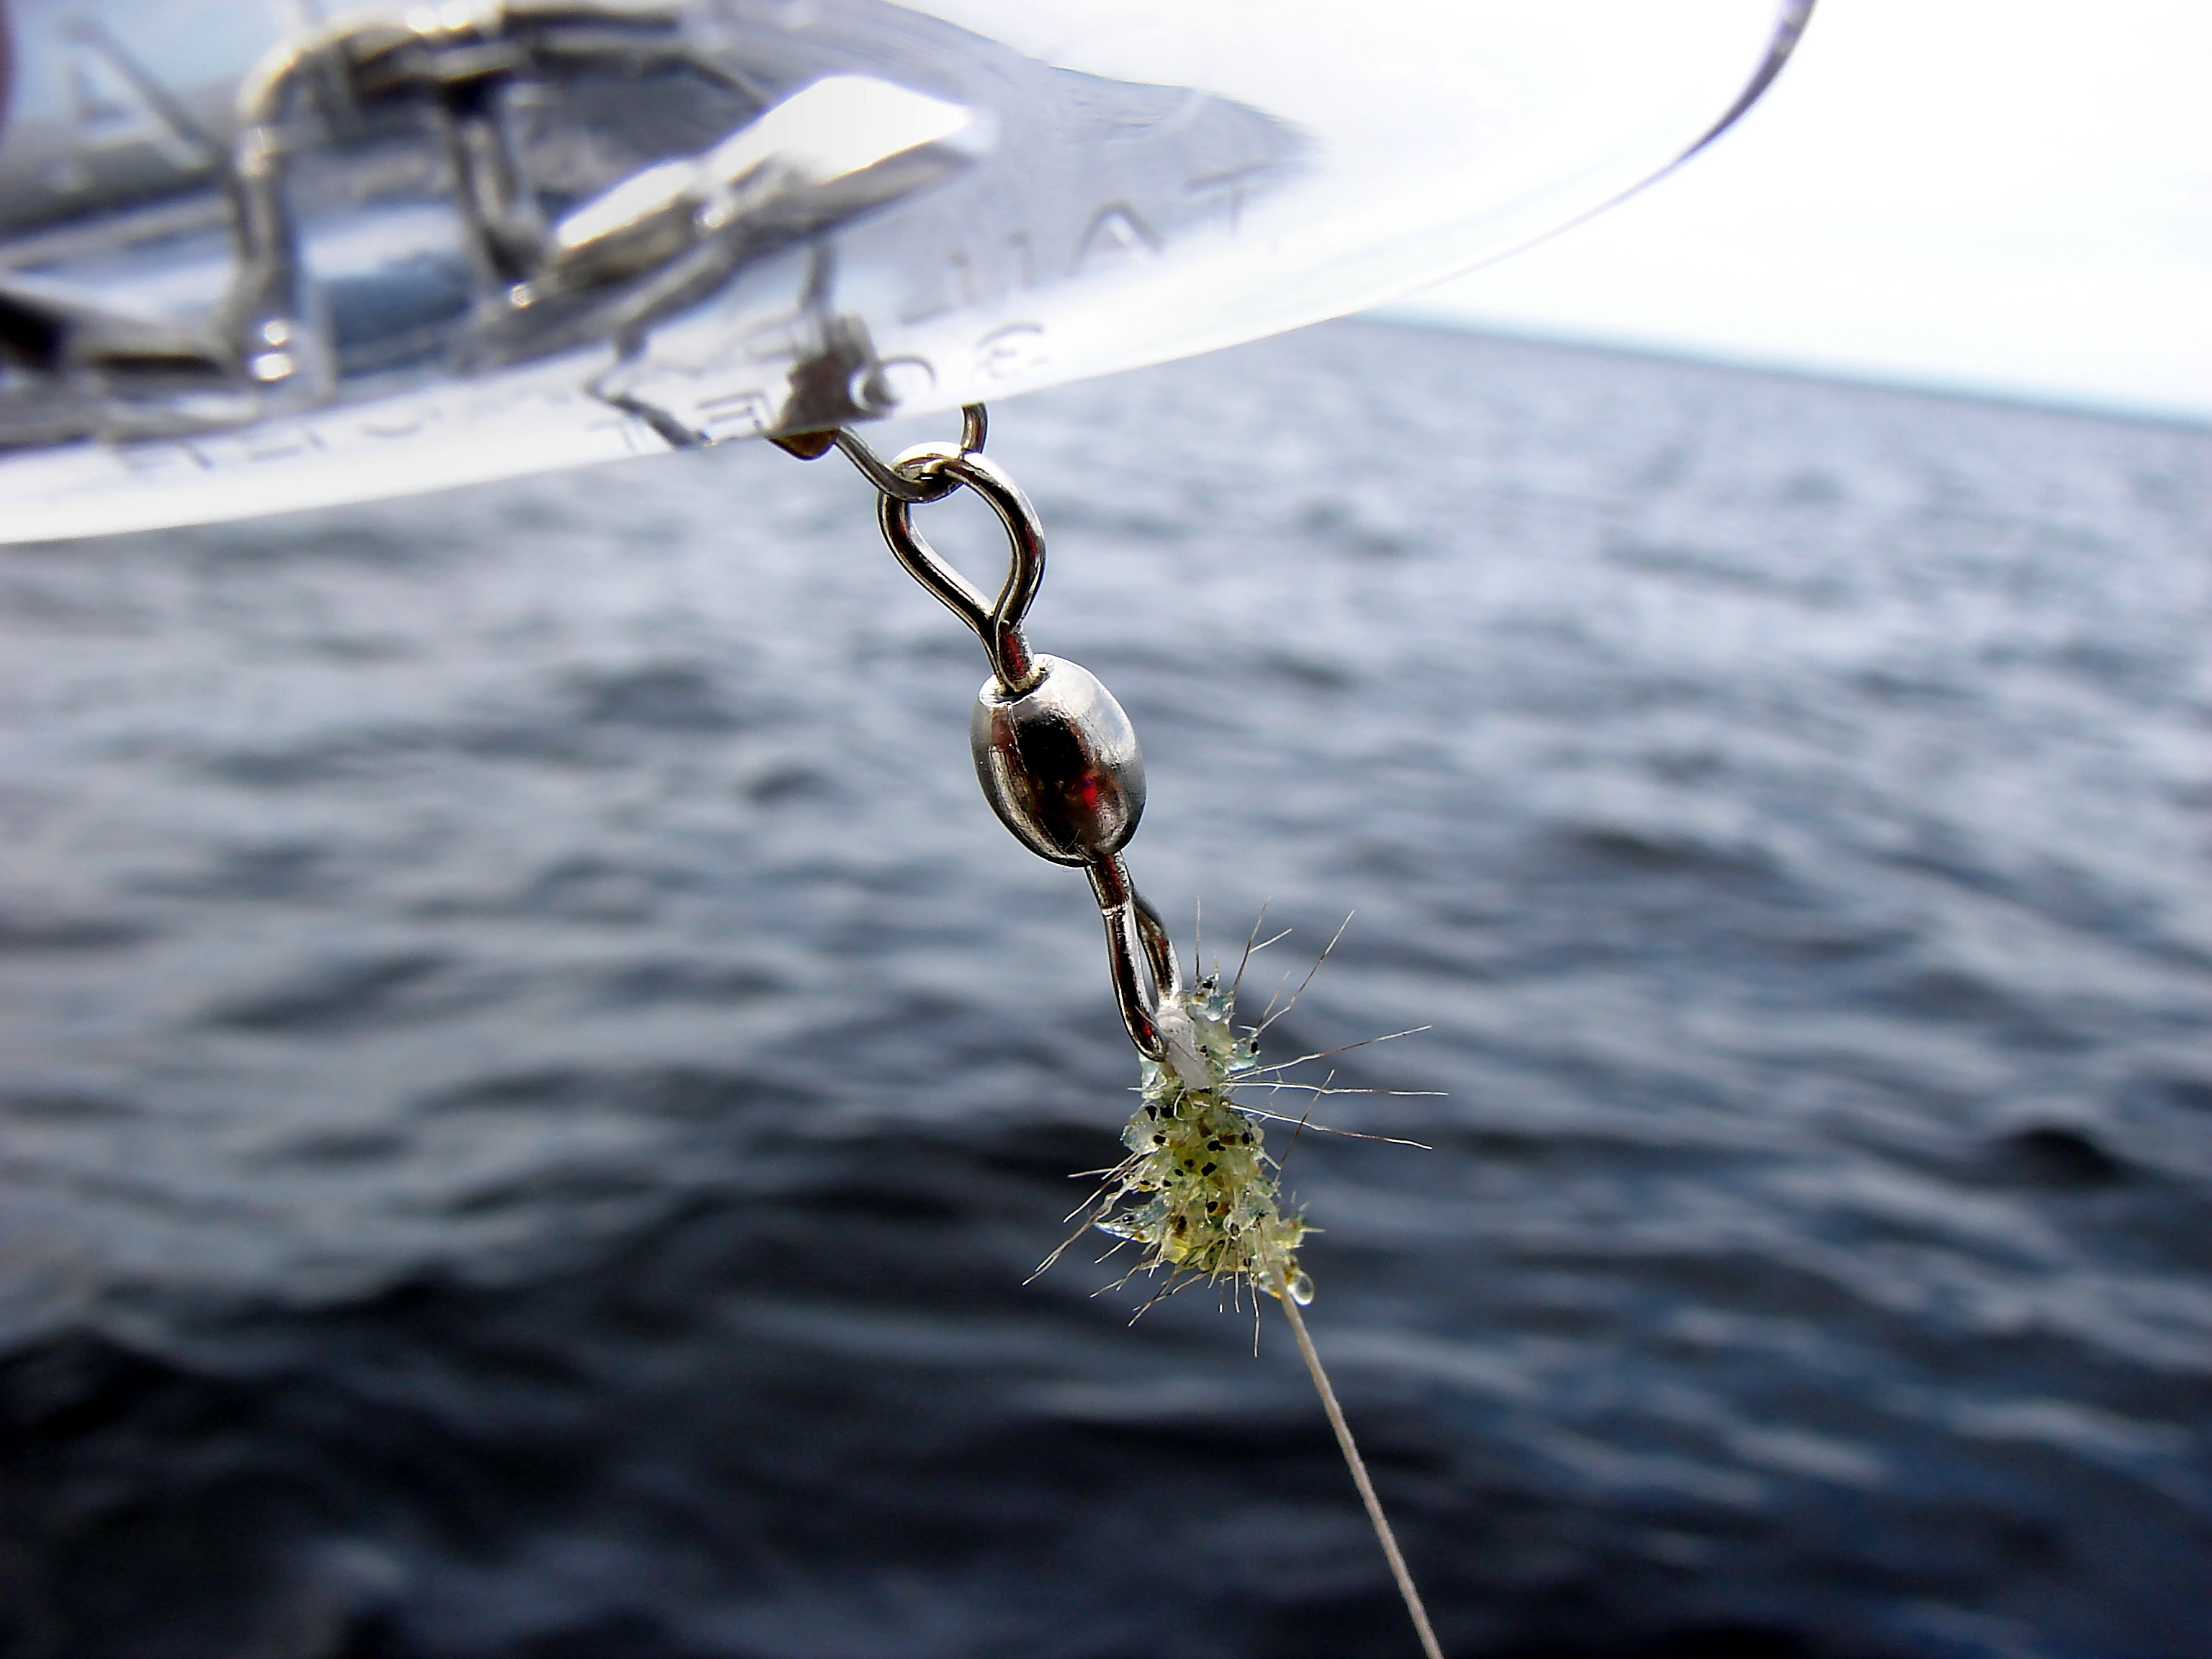 Lake Champlain Task Force Eradicating Spiny Water Flea Not Possible